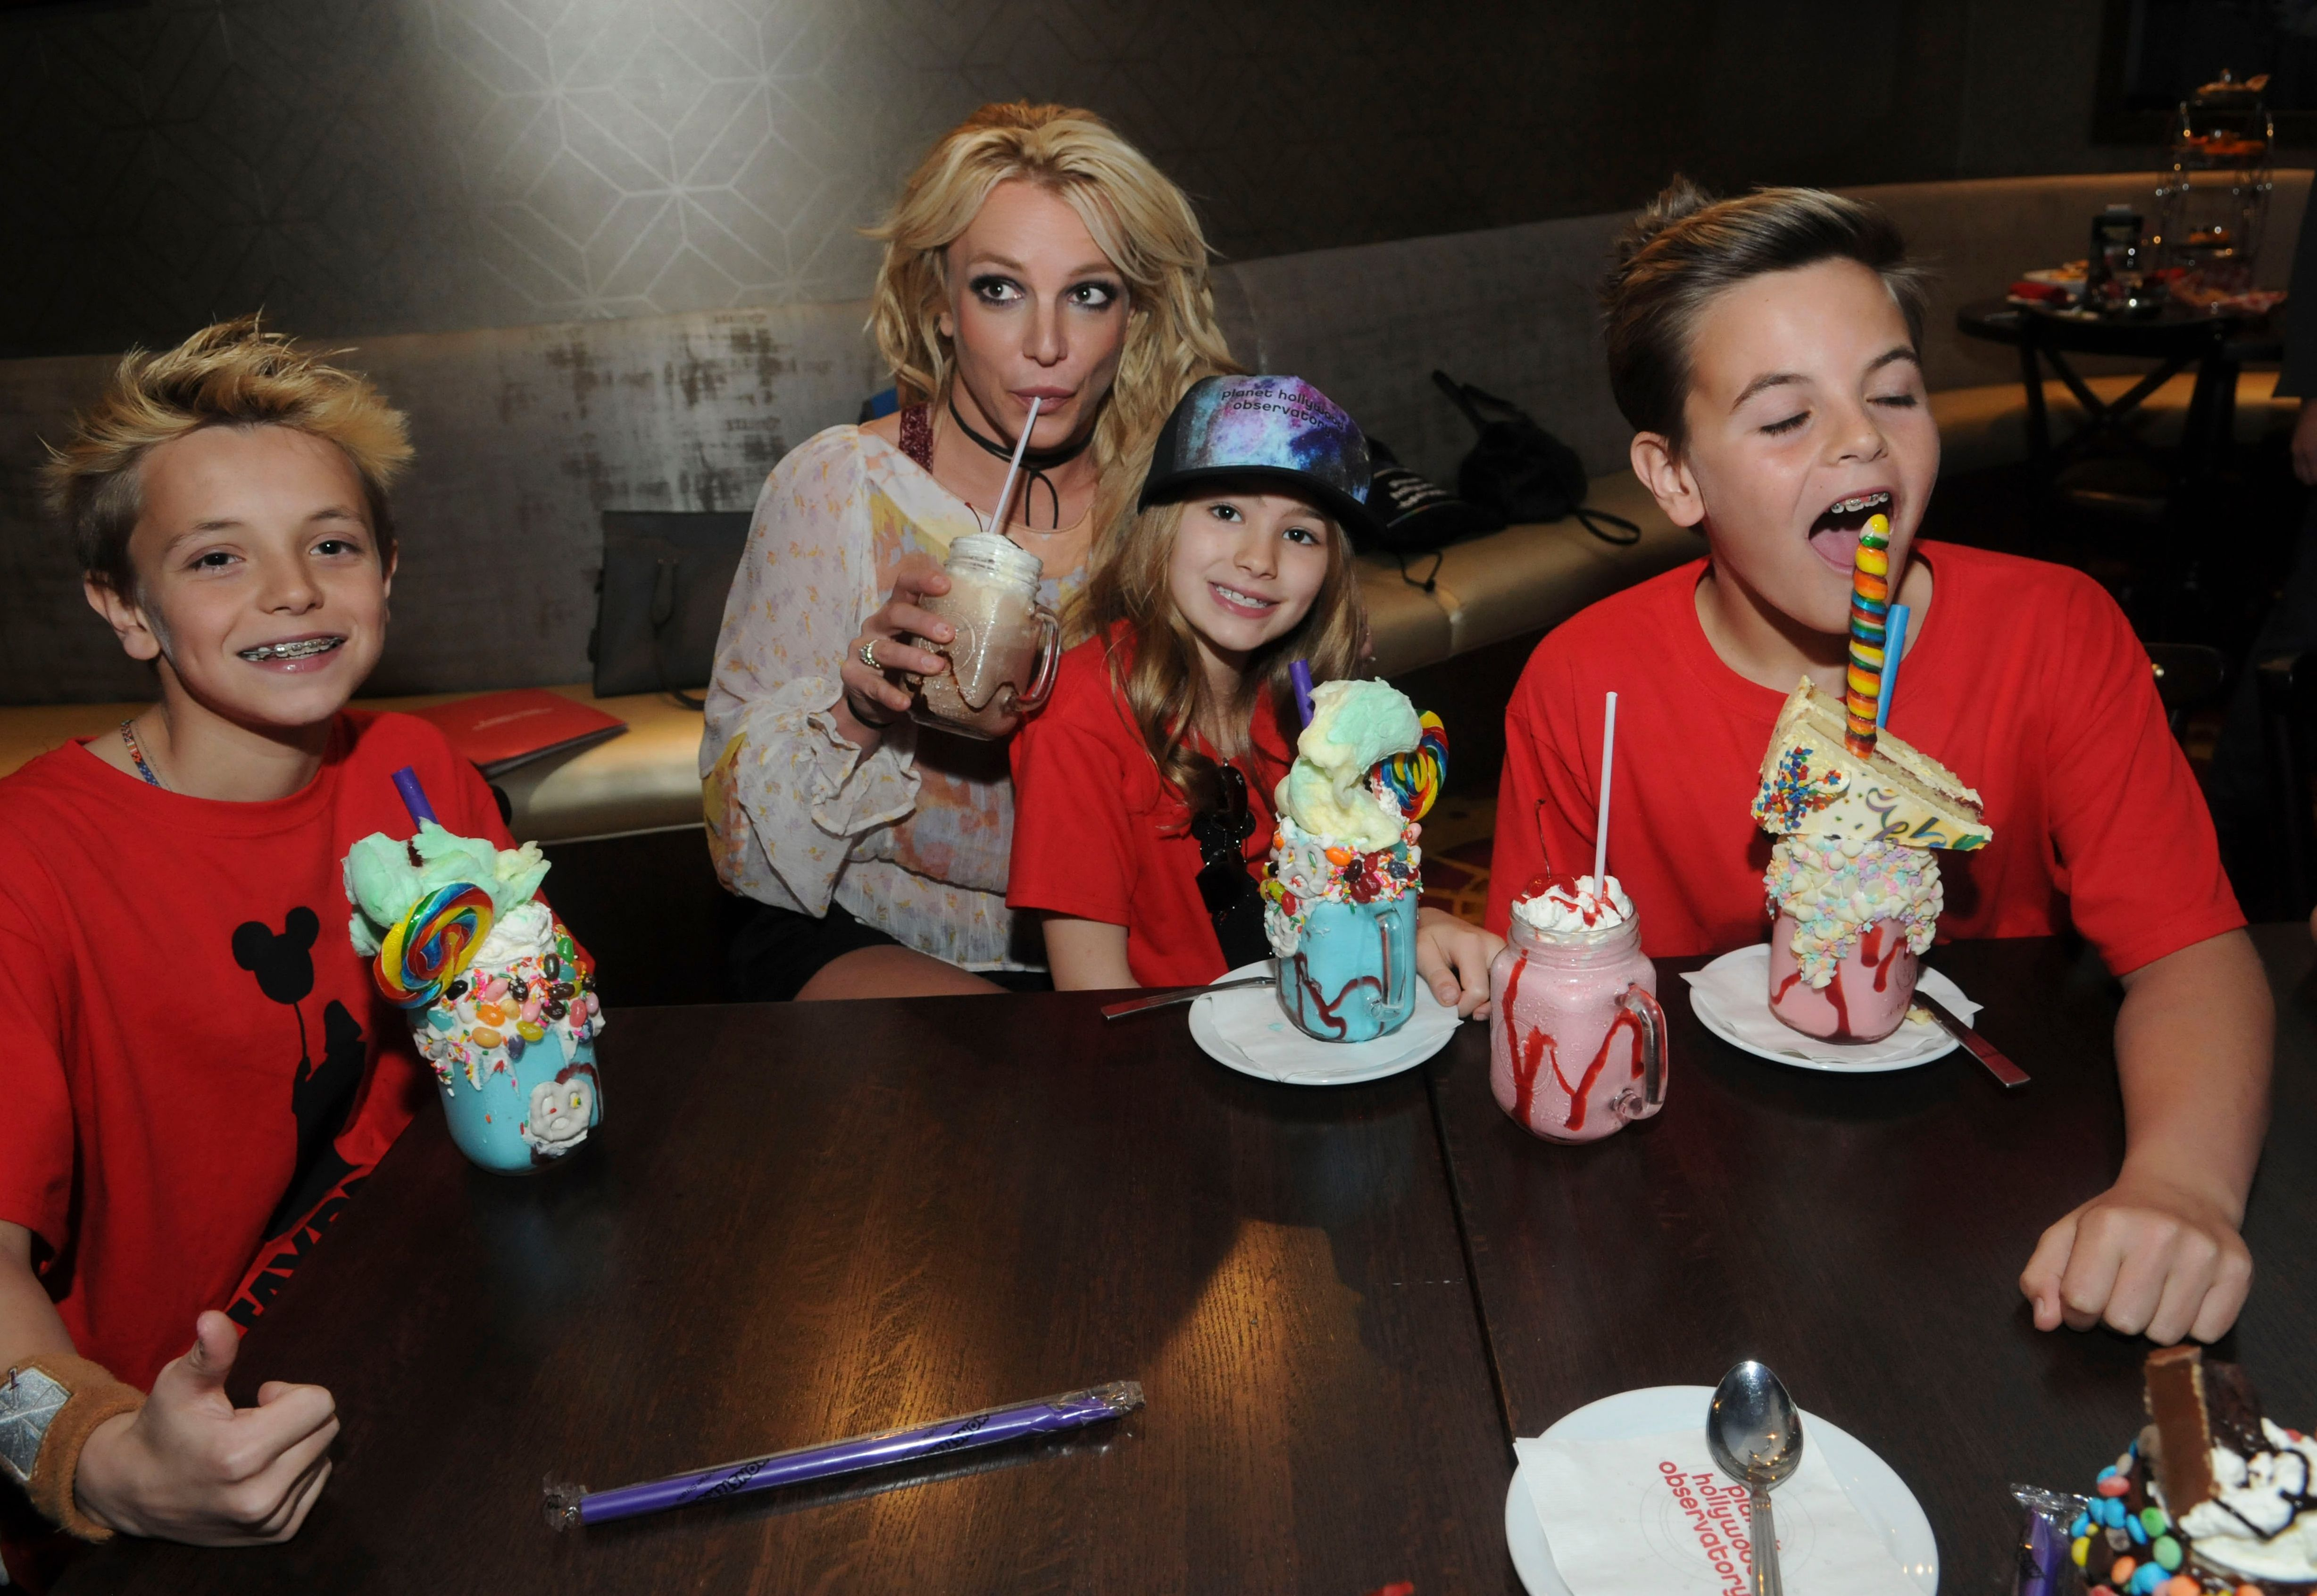 Britney Spears with sons Jayden and Sean Federline and niece Maddie Aldridge at Planet Hollywood in Orlando, Florida in 2017 | Source: Getty Images